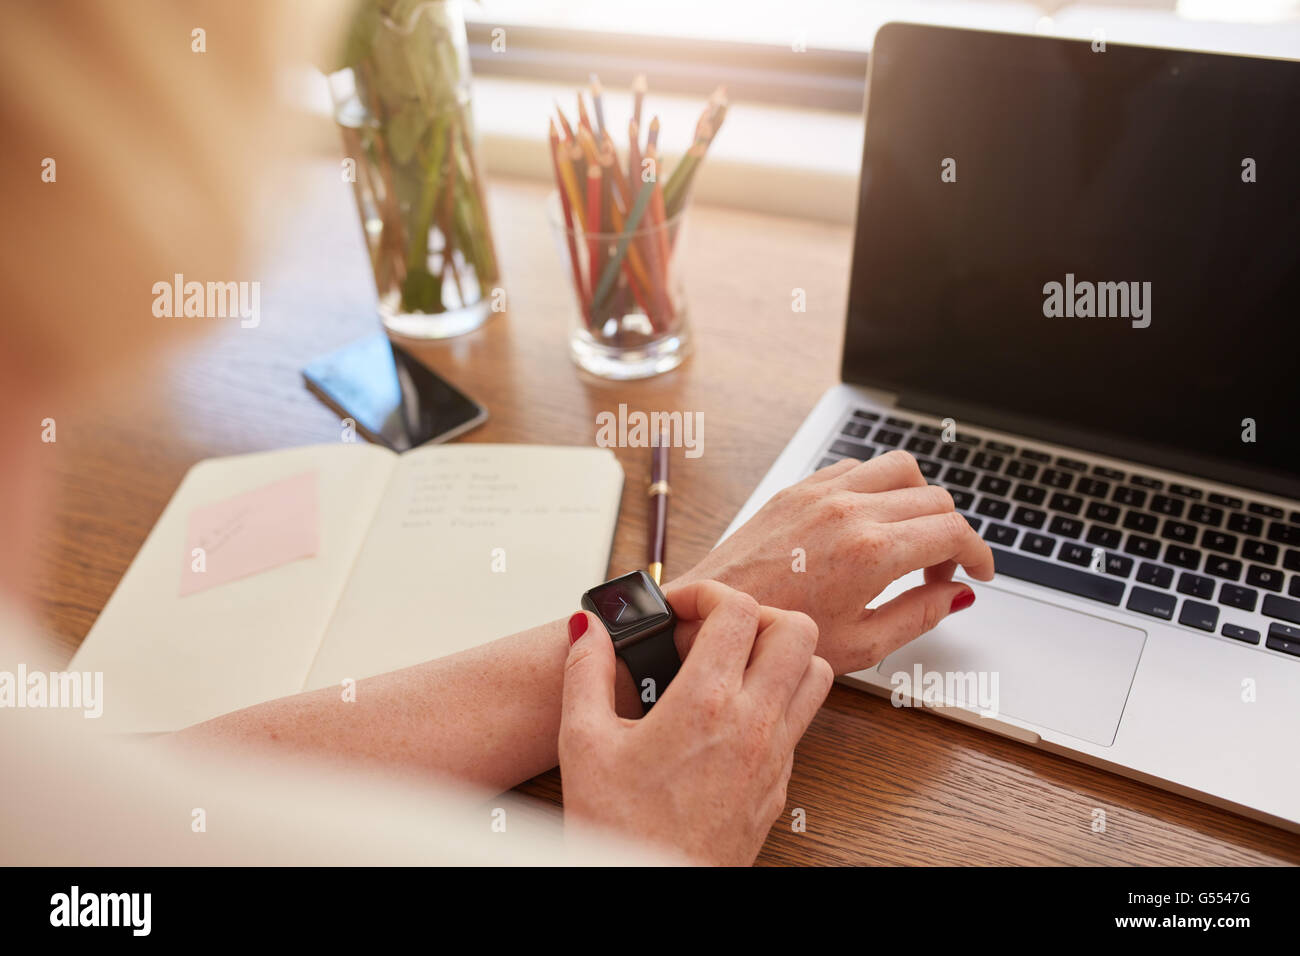 Close up shot of woman using smartwatch. Focus on female hands and smart watch with laptop and diary on table. Stock Photo